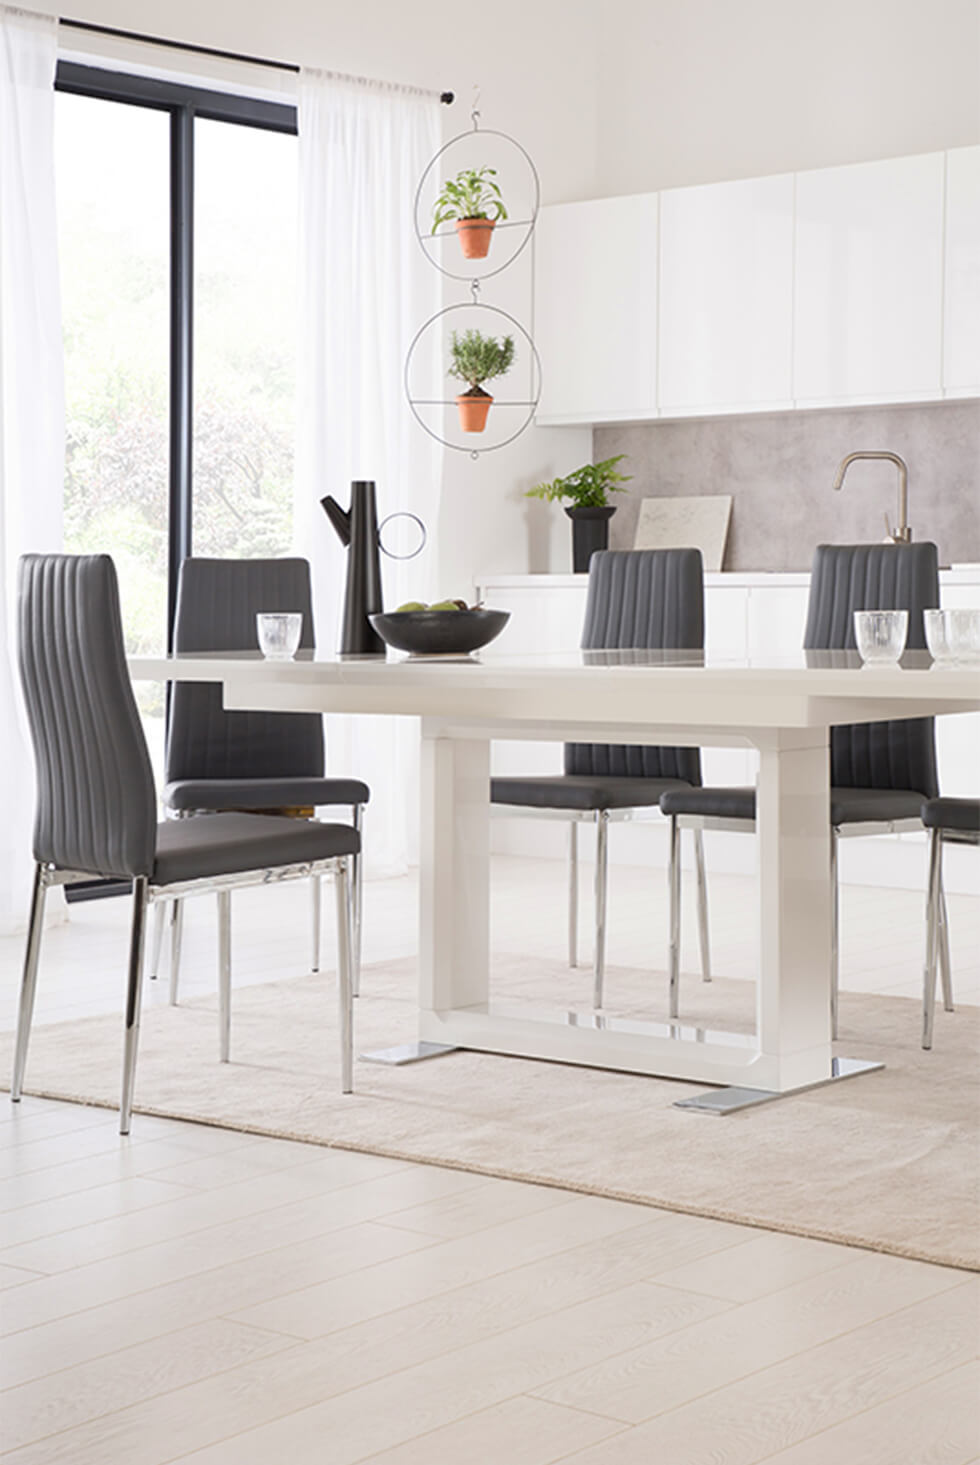 Furniture Choice - Tokyo White High Gloss Extending Dining Table with 4 Leon Grey Leather Chairs